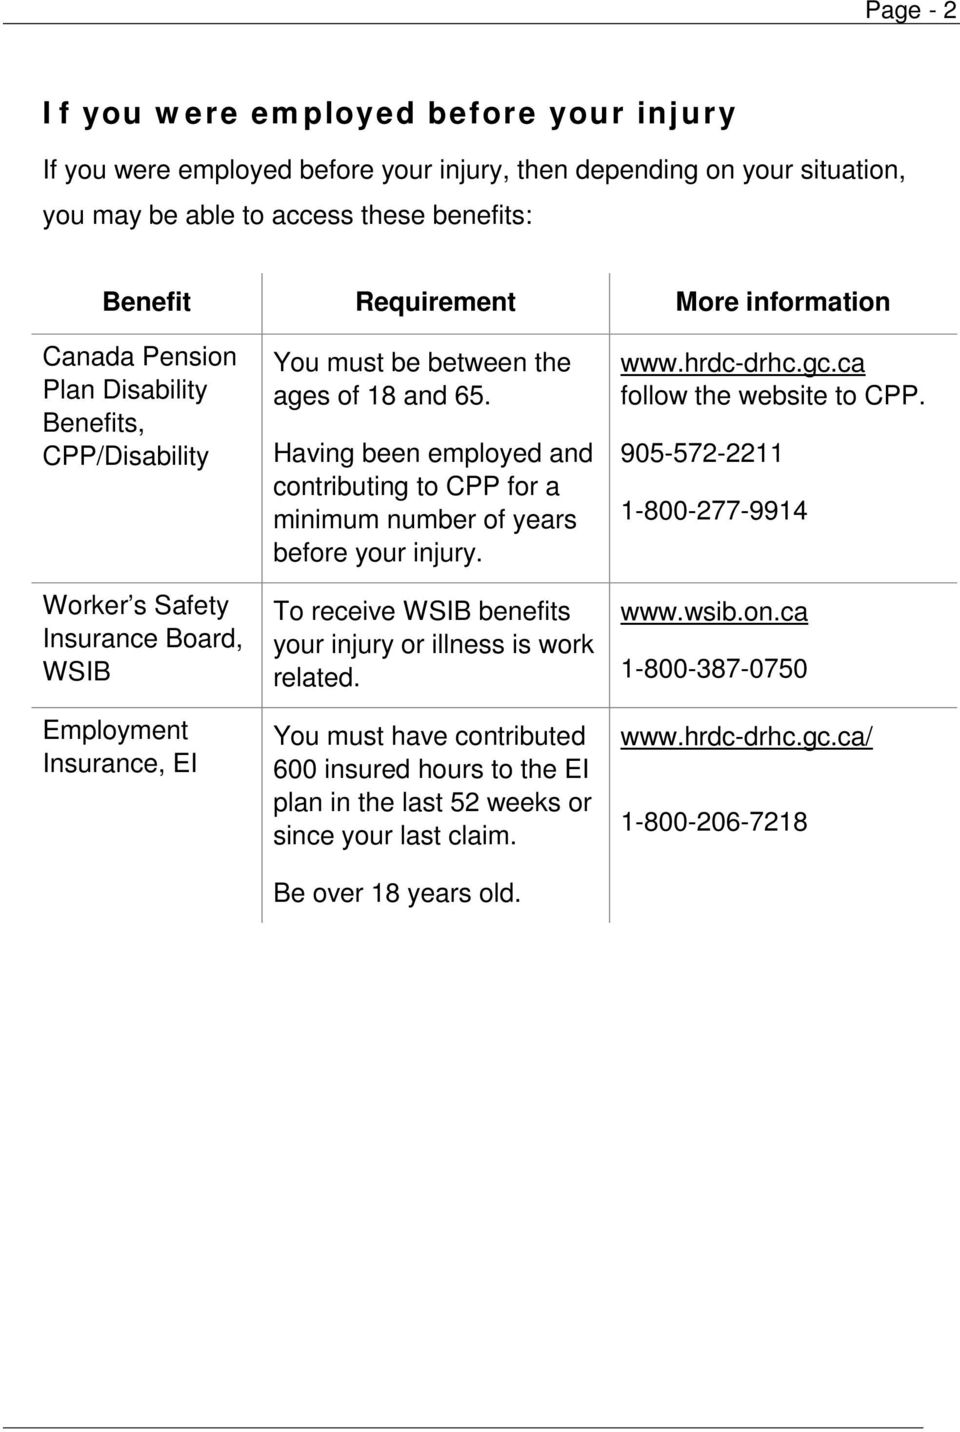 Having been employed and contributing to CPP for a minimum number of years before your injury. To receive WSIB benefits your injury or illness is work related.